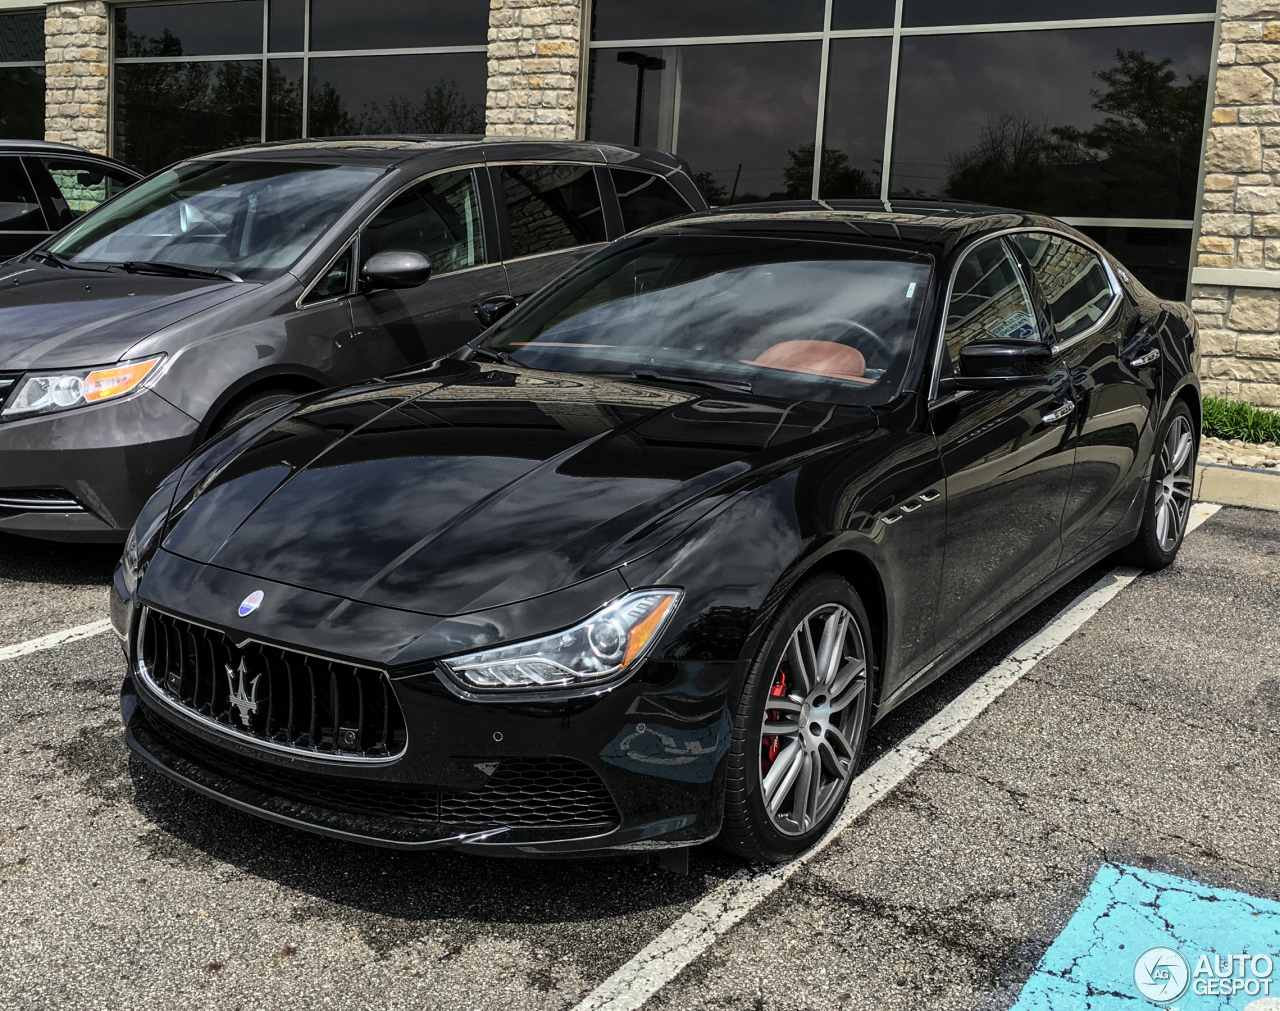 maserati ghibli s q4 2013 26 may 2016 autogespot. Black Bedroom Furniture Sets. Home Design Ideas